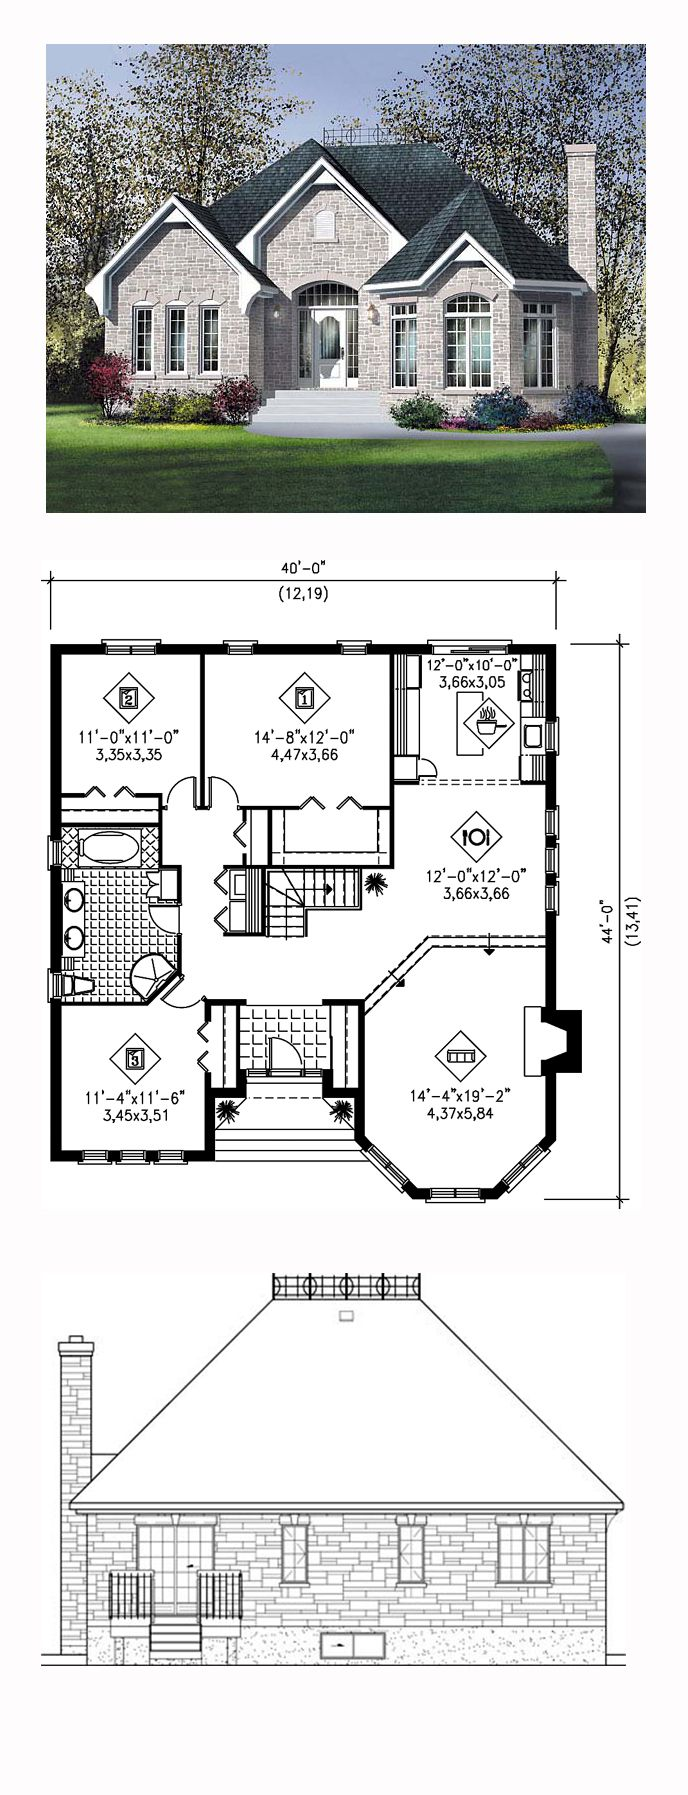 Narrow Lot One Story Victorian Style House Plan 49564 With 3 Bed